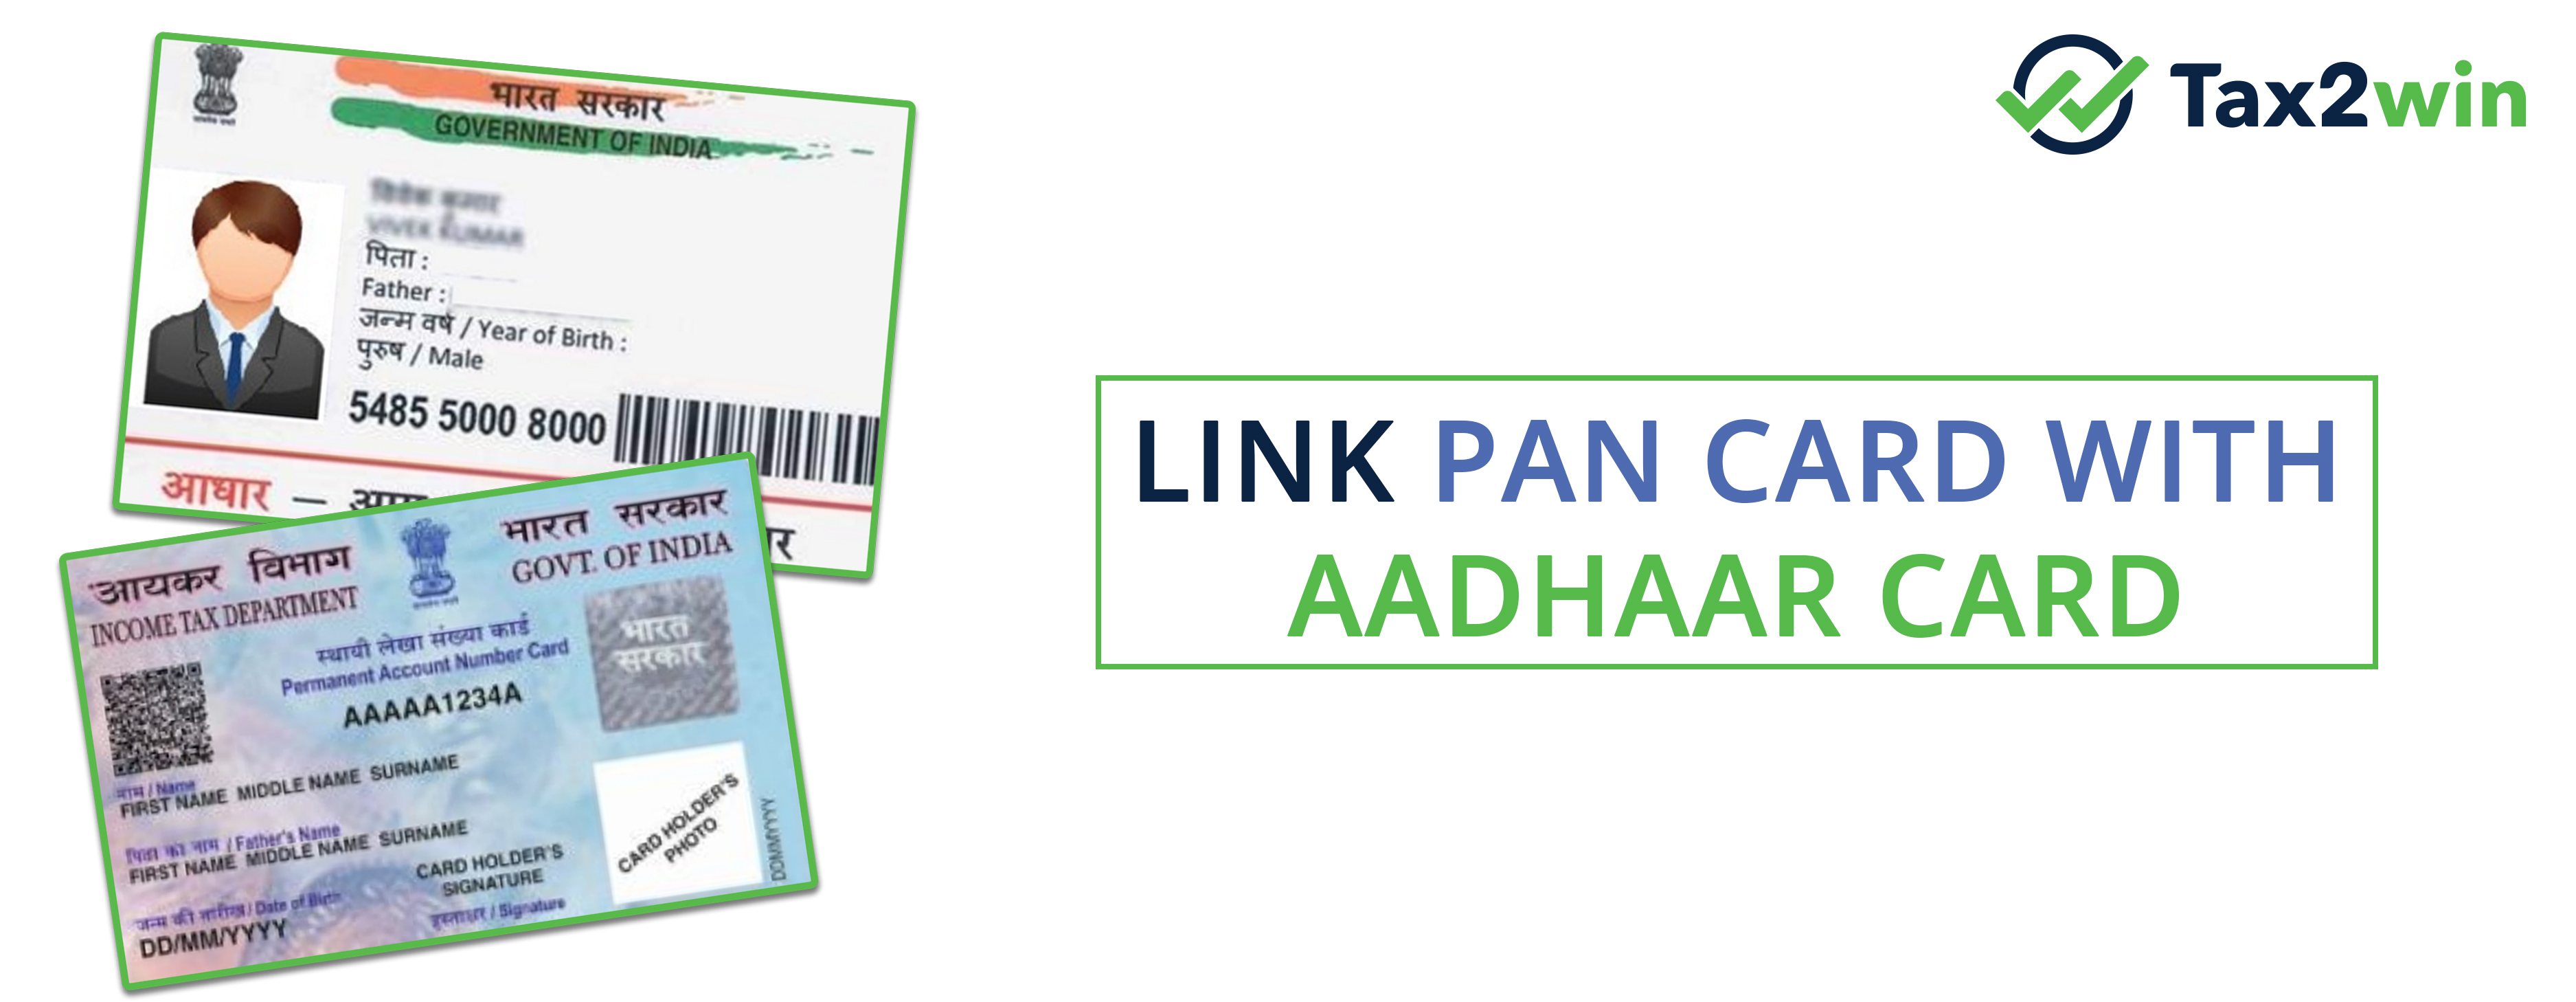 Pan card with Aadhar card